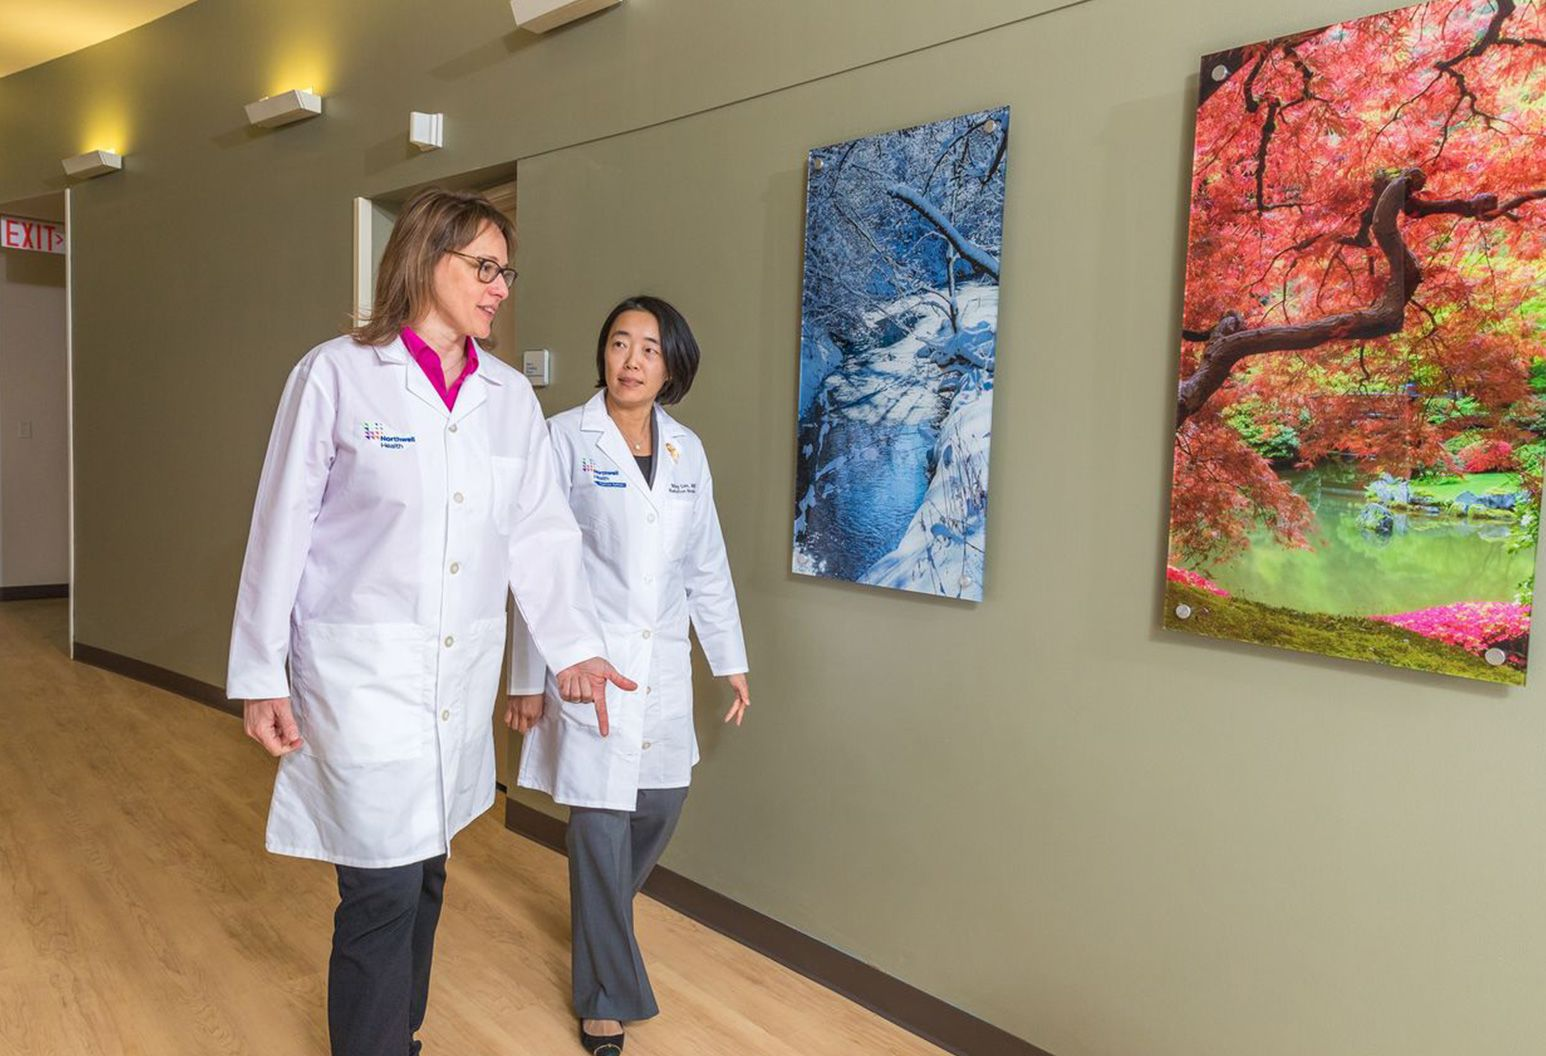 Two female doctors wearing white lab coats are walking and talking in a hallway with blue and pink artwork on the wall.